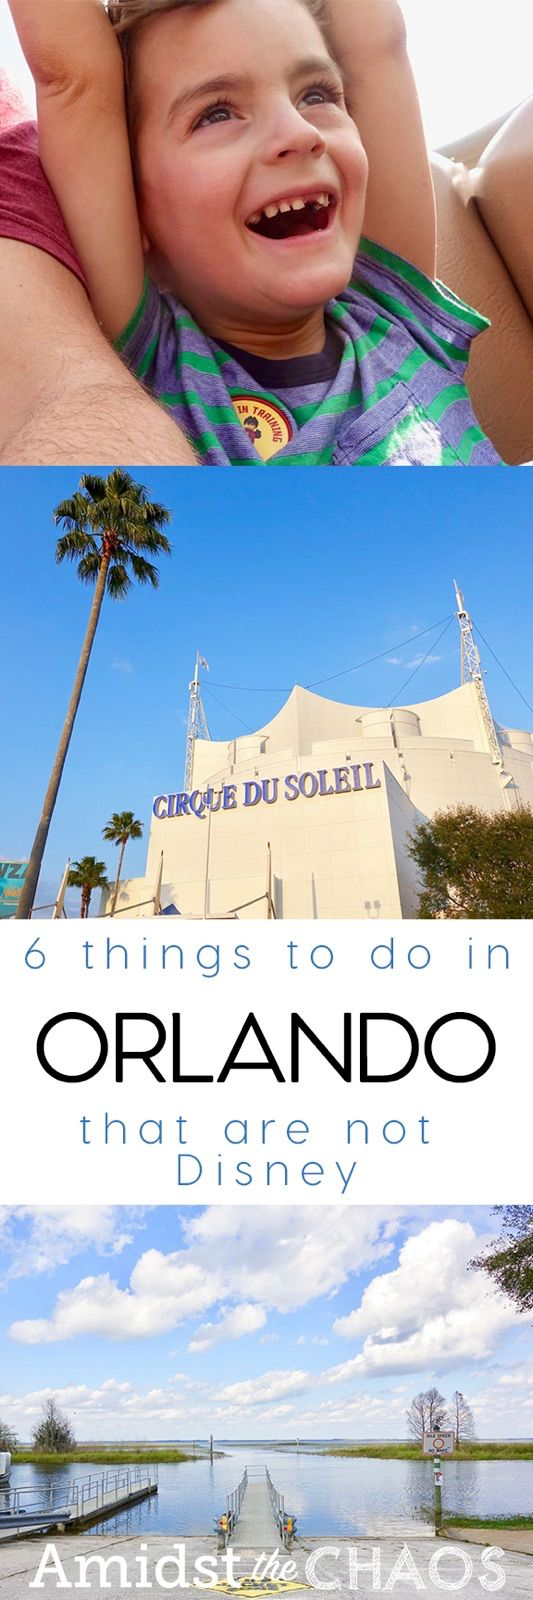 Having partnered with Visit Orlando on our most recent trip to Florida, we are excited to share with you six different attractions available in the Orlando area for you and your family!